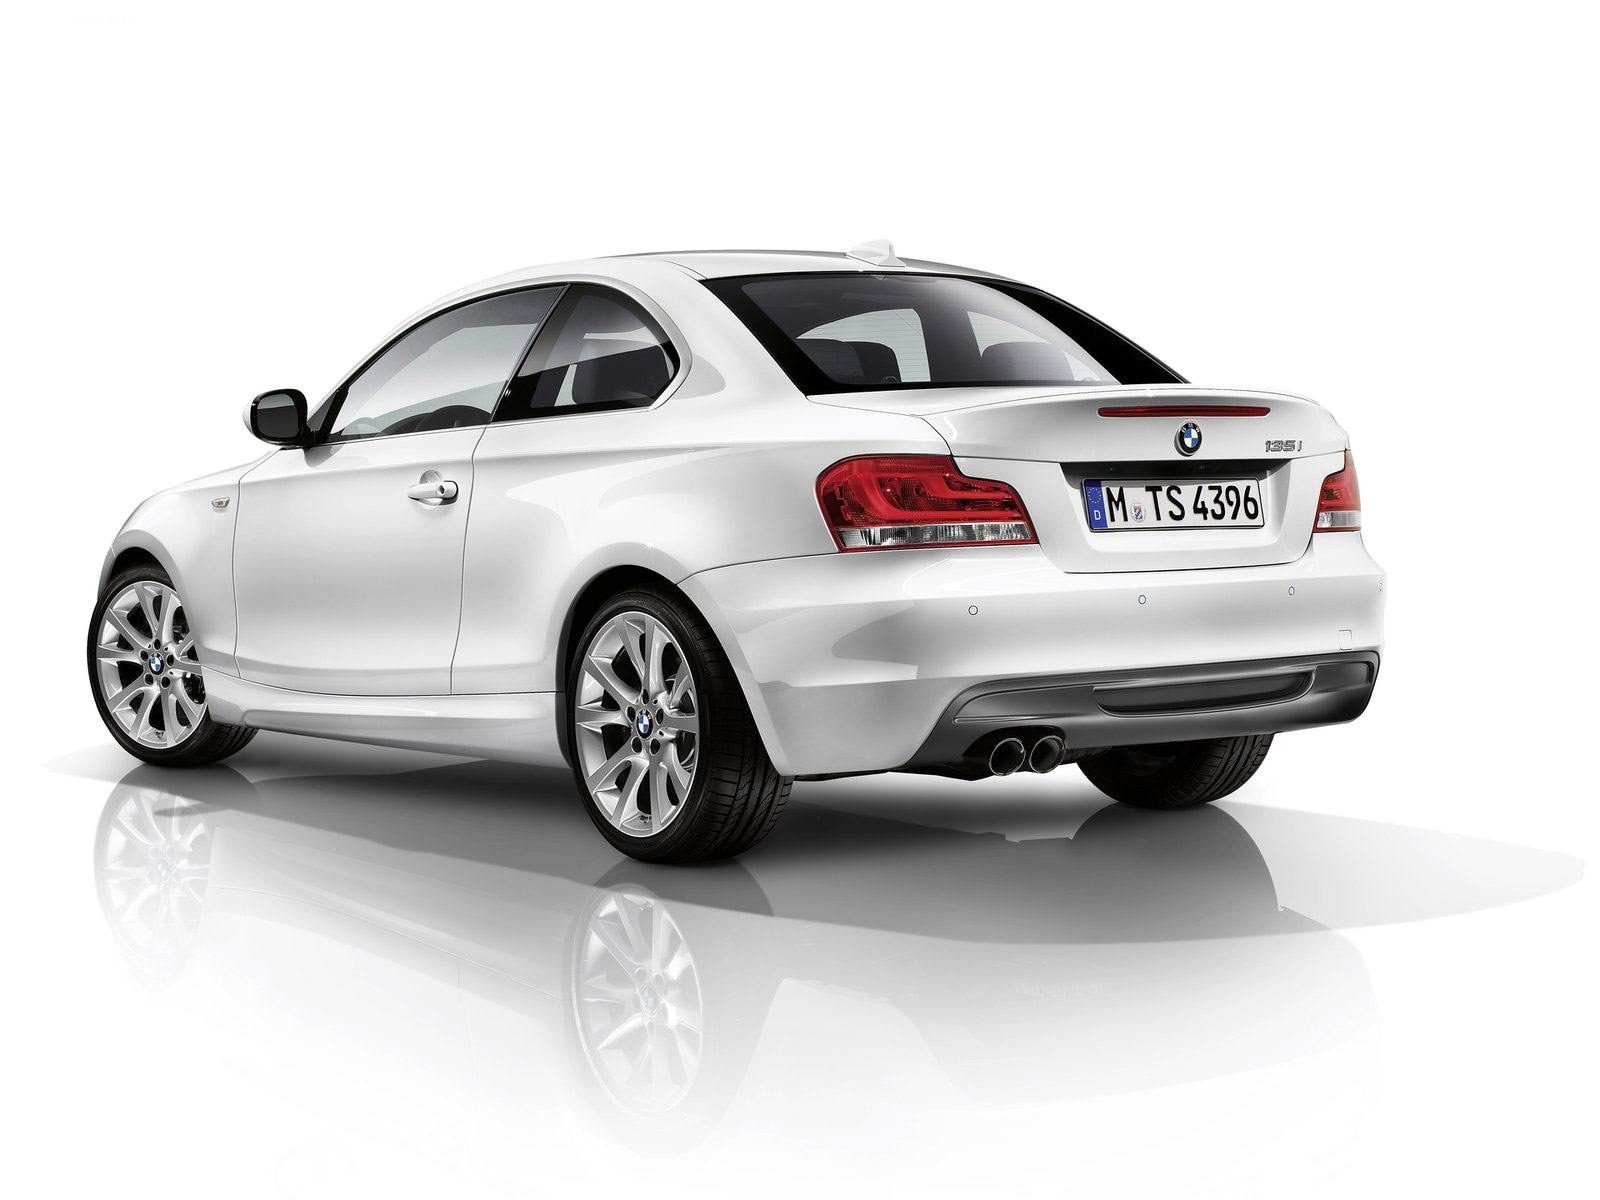 BMW 1 series 135is 2012 photo - 11